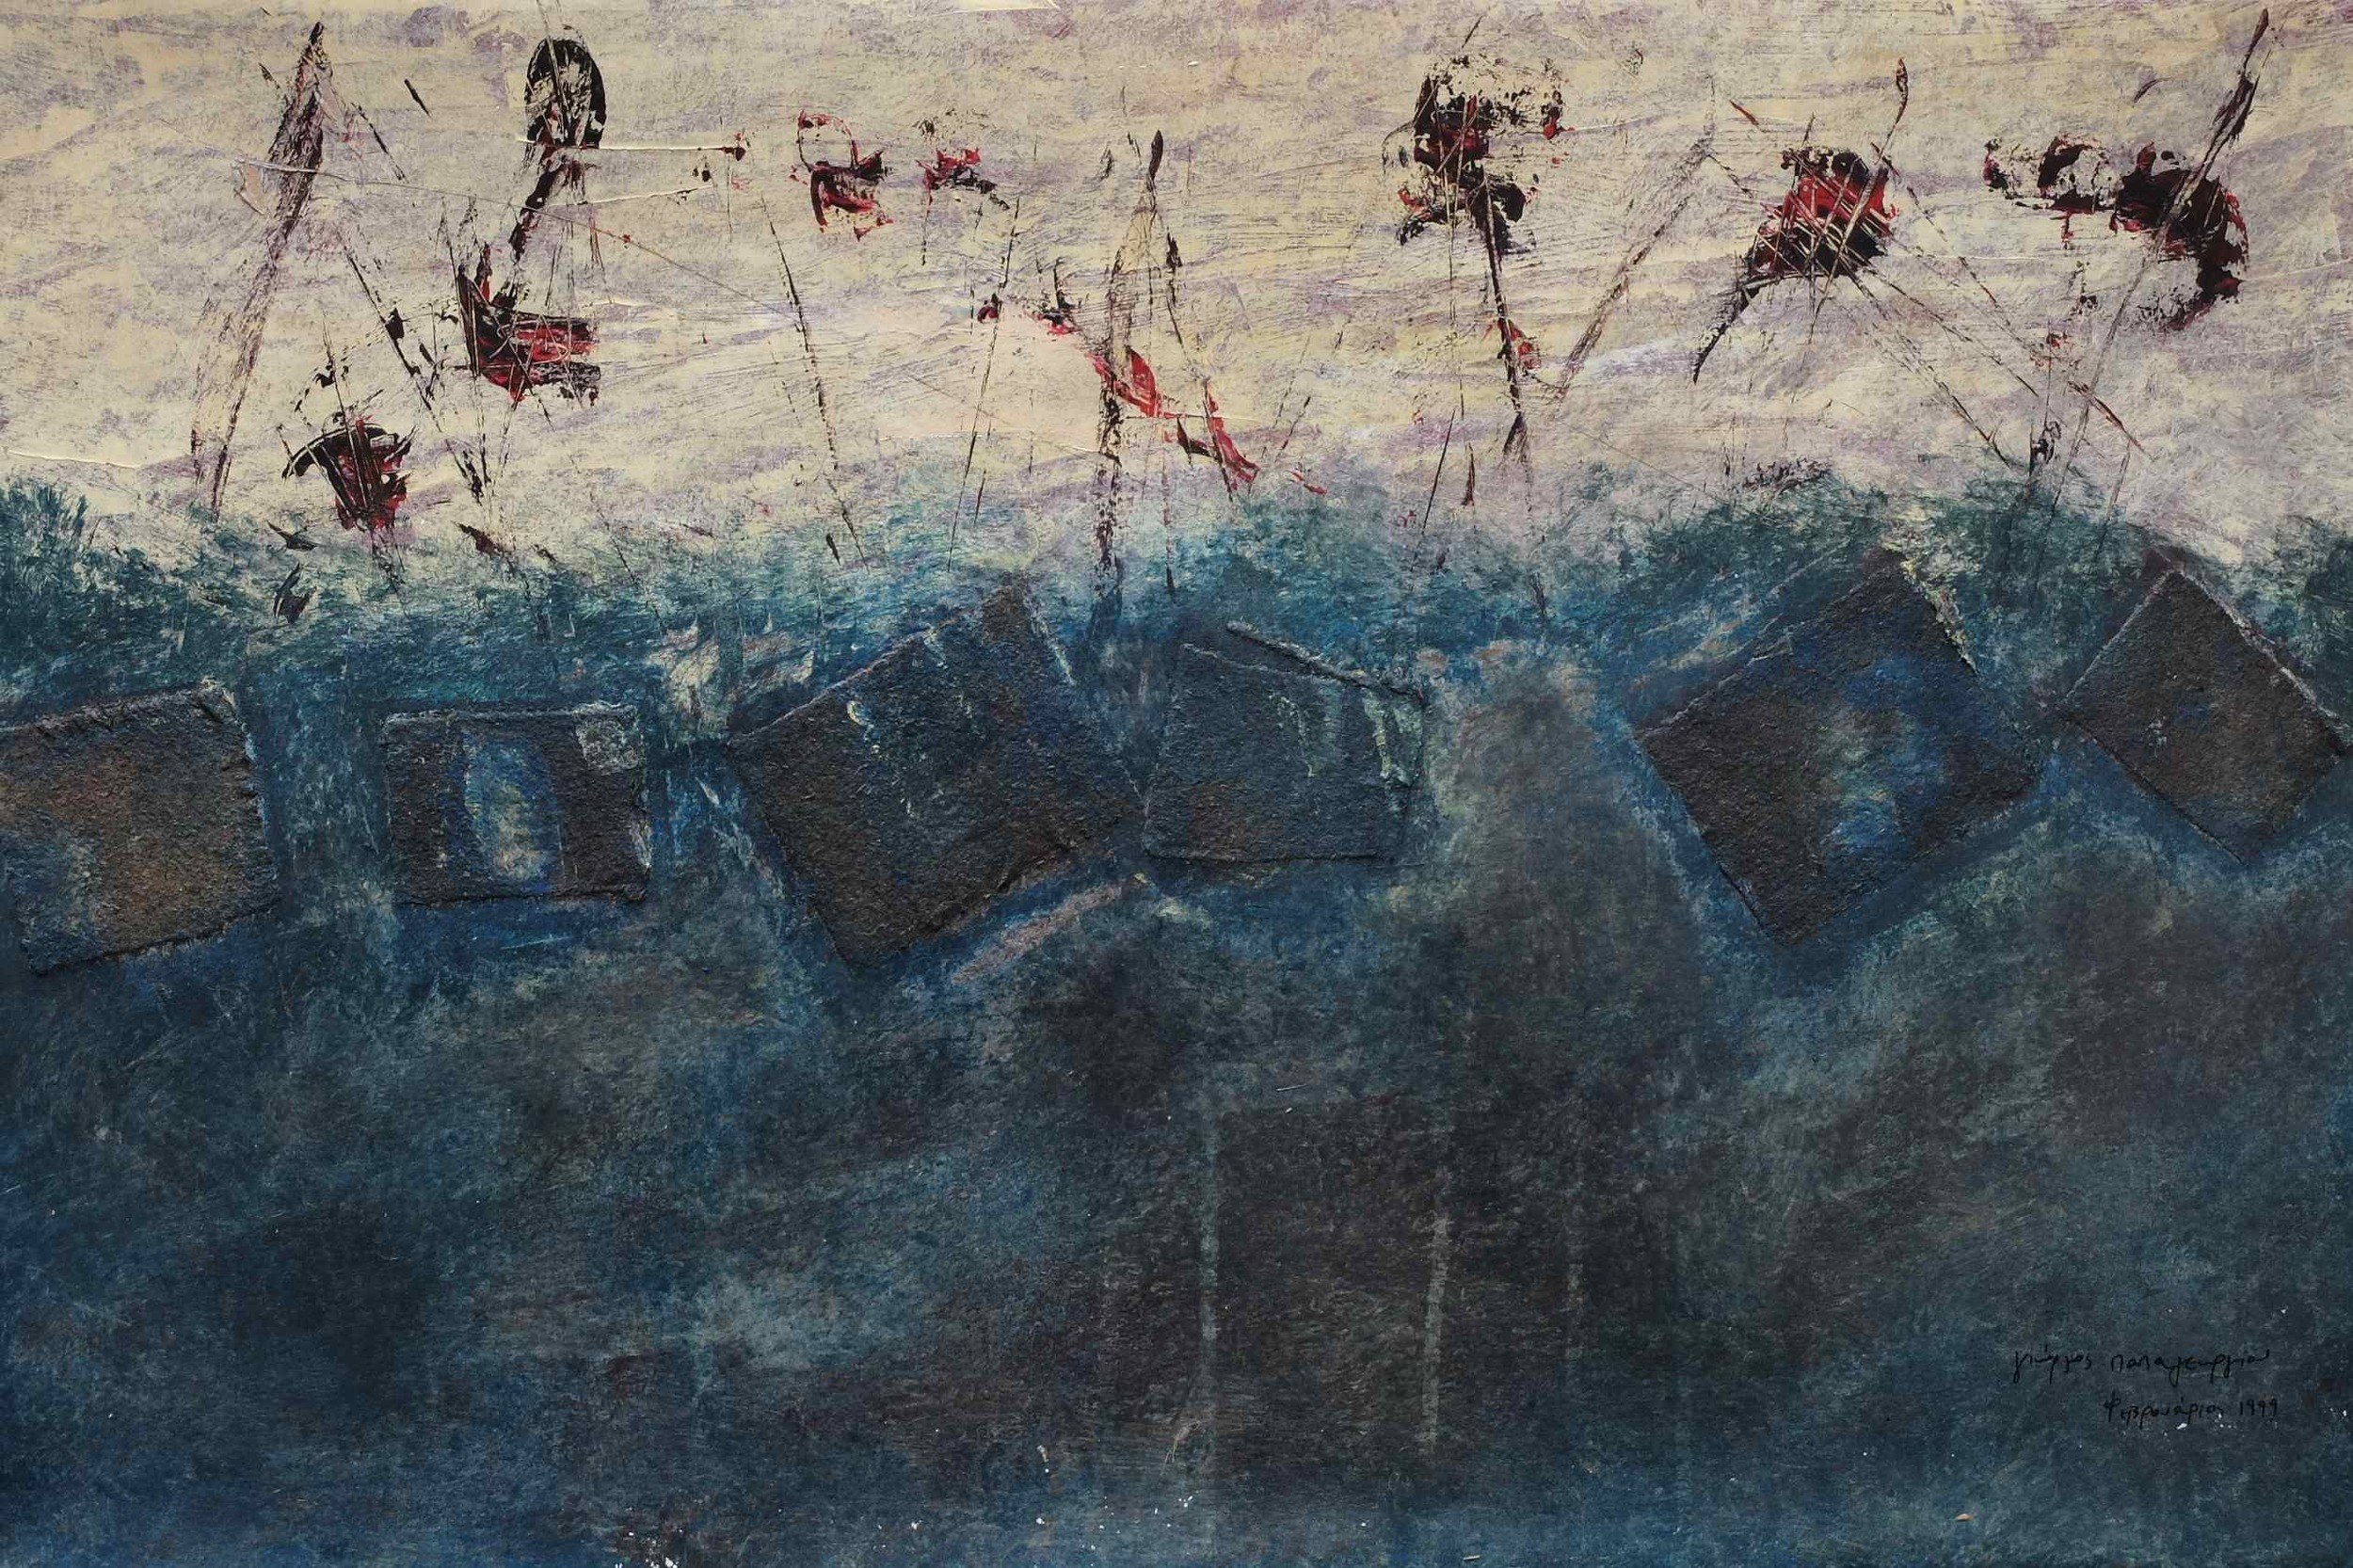 untitled; mixed media on paper; 41x62; 1999